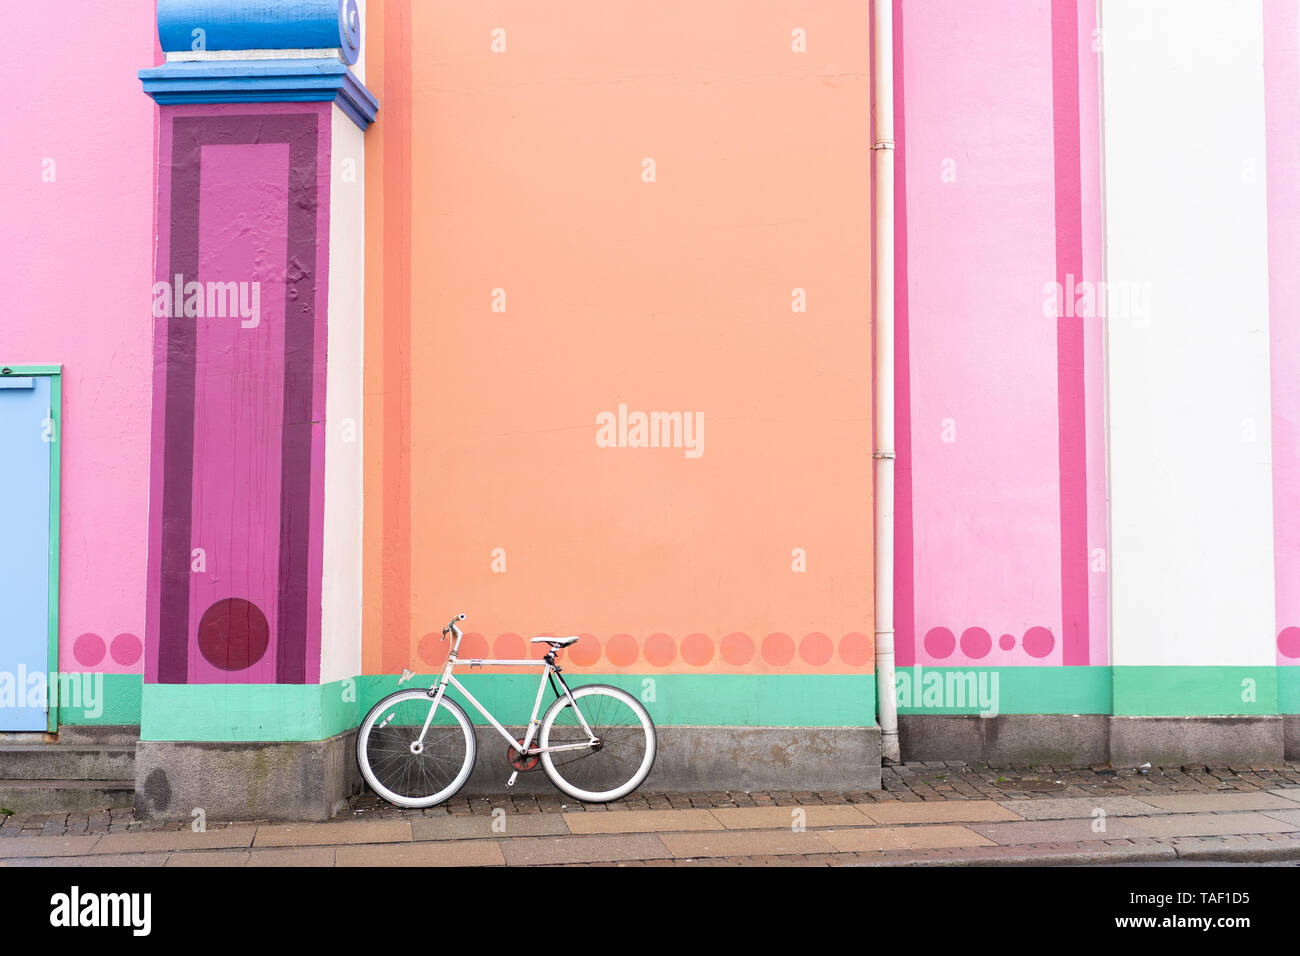 Denmark, Copenhagen, Bicycle leaning on colorful wall - Stock Image